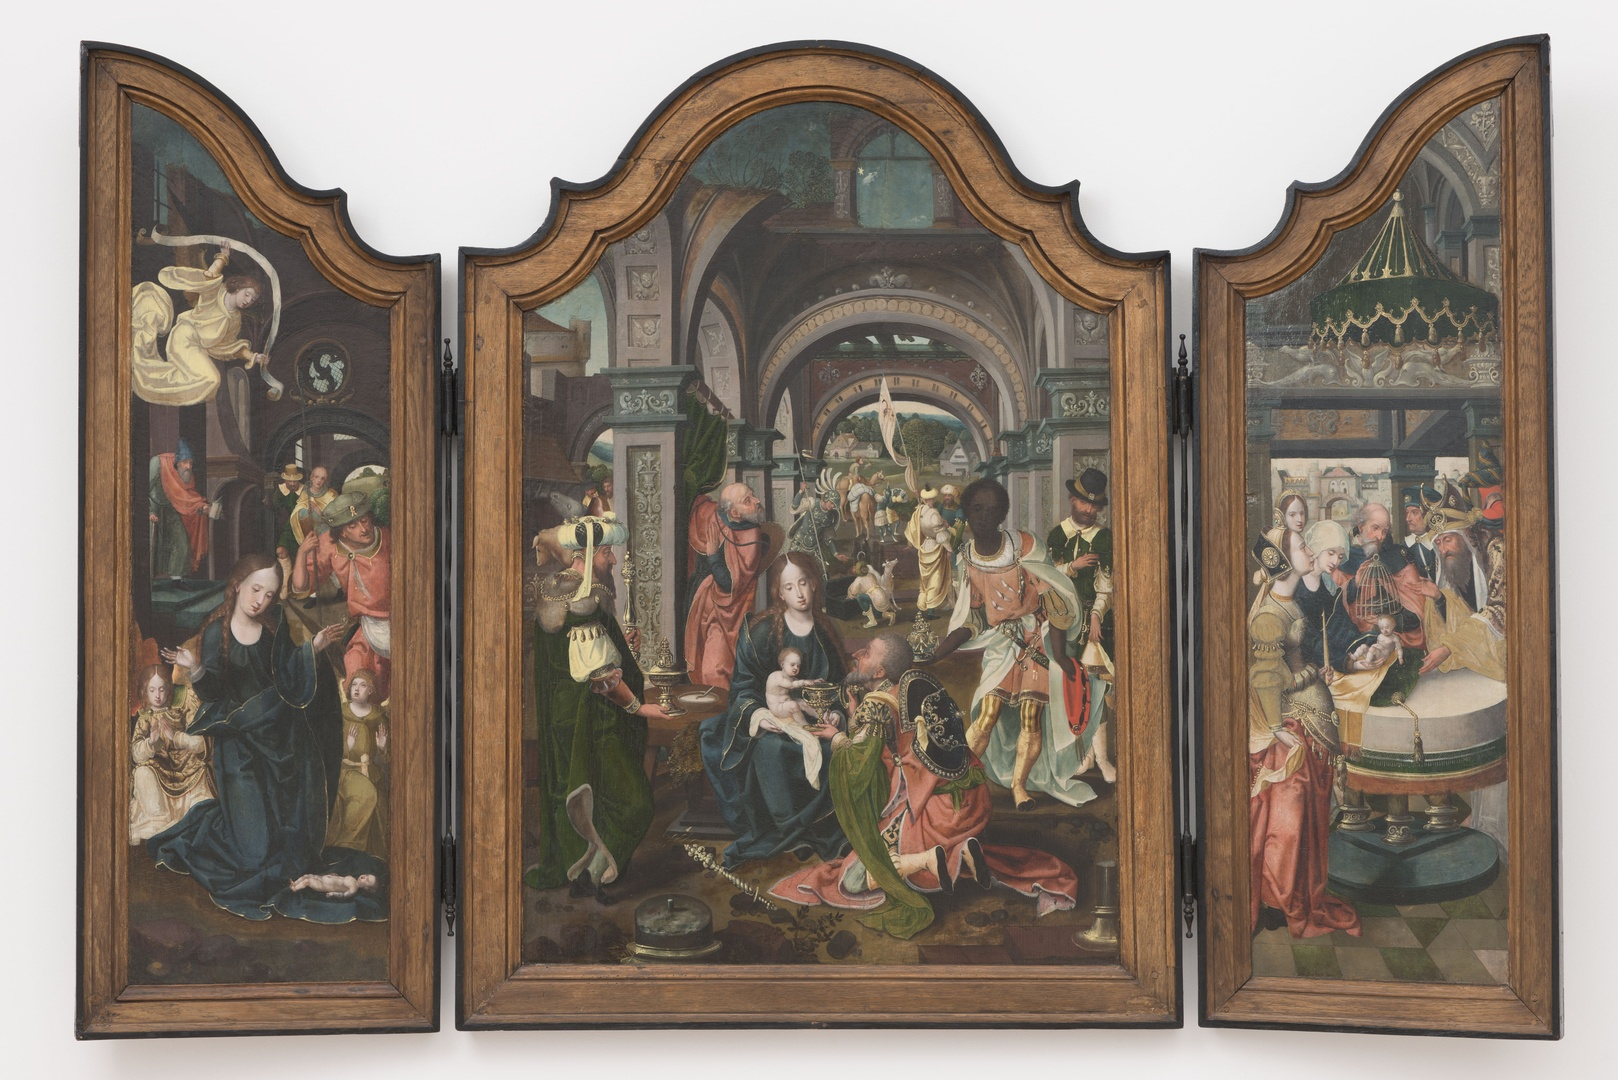 Triptych with Adoration of the Child Adoration of the Magi and Presentation in the Temple